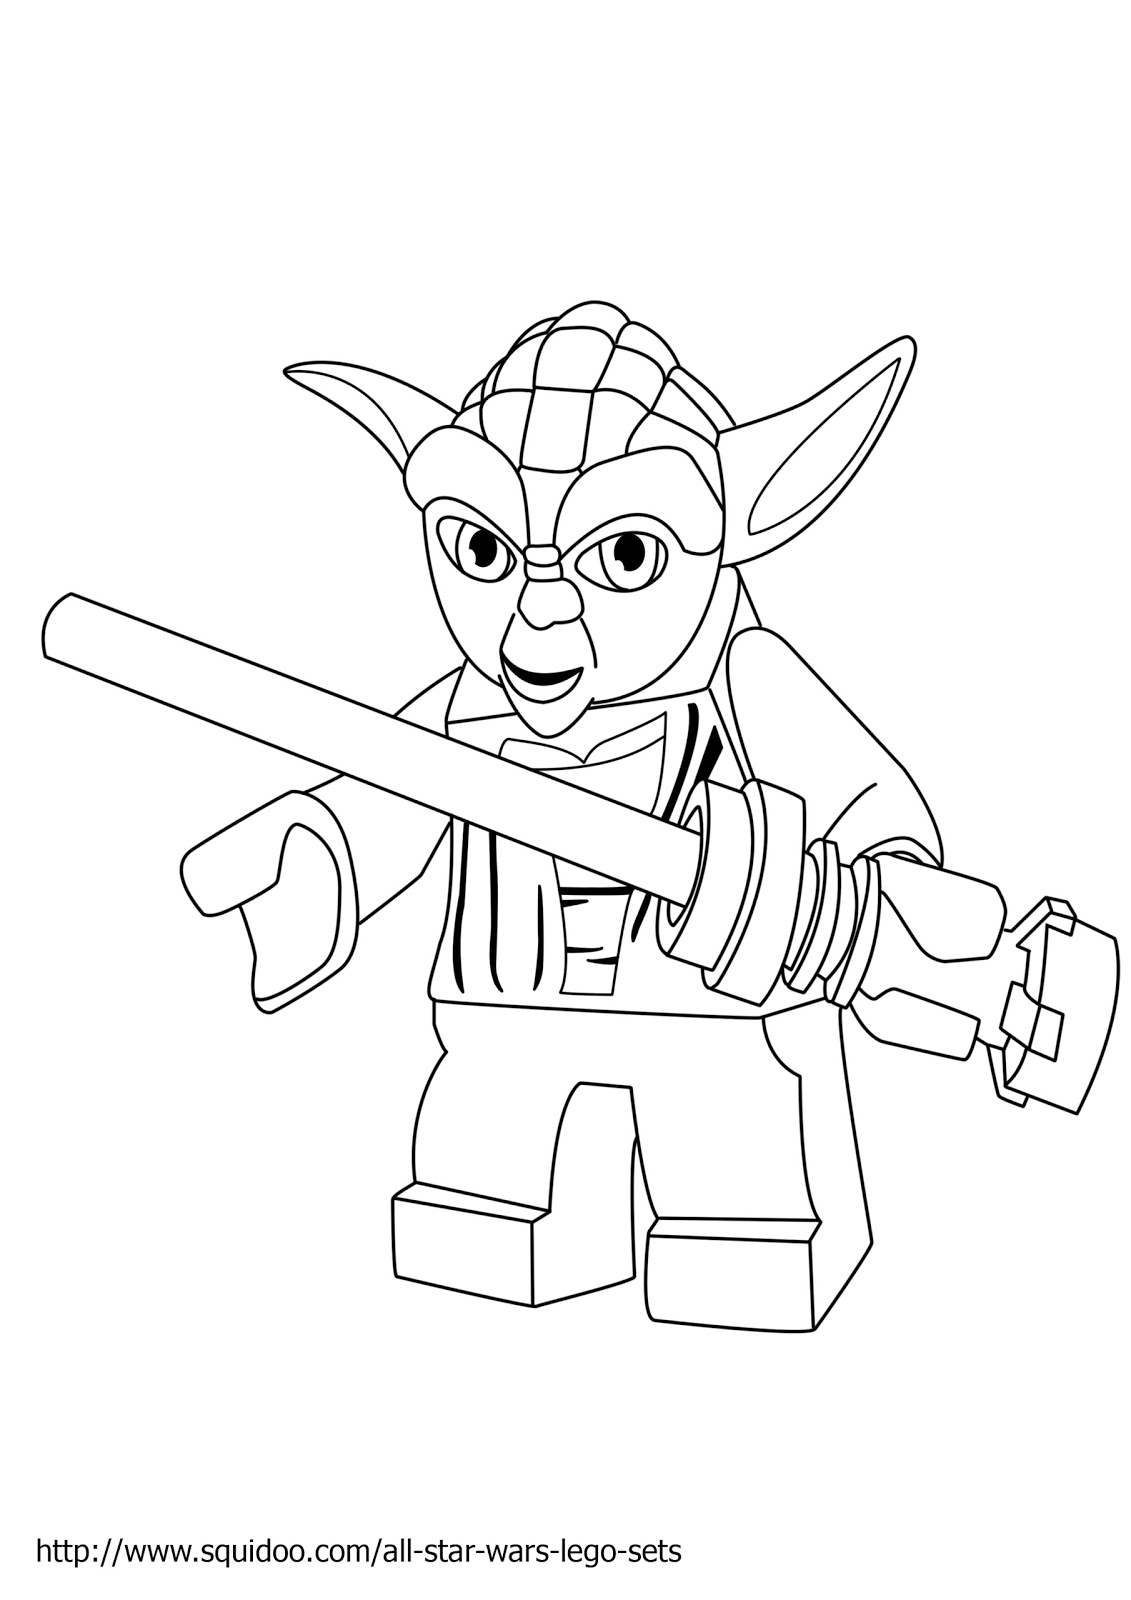 1000 Images About Everything Star Wars On Pinterest Wars Coloring Pages Lego